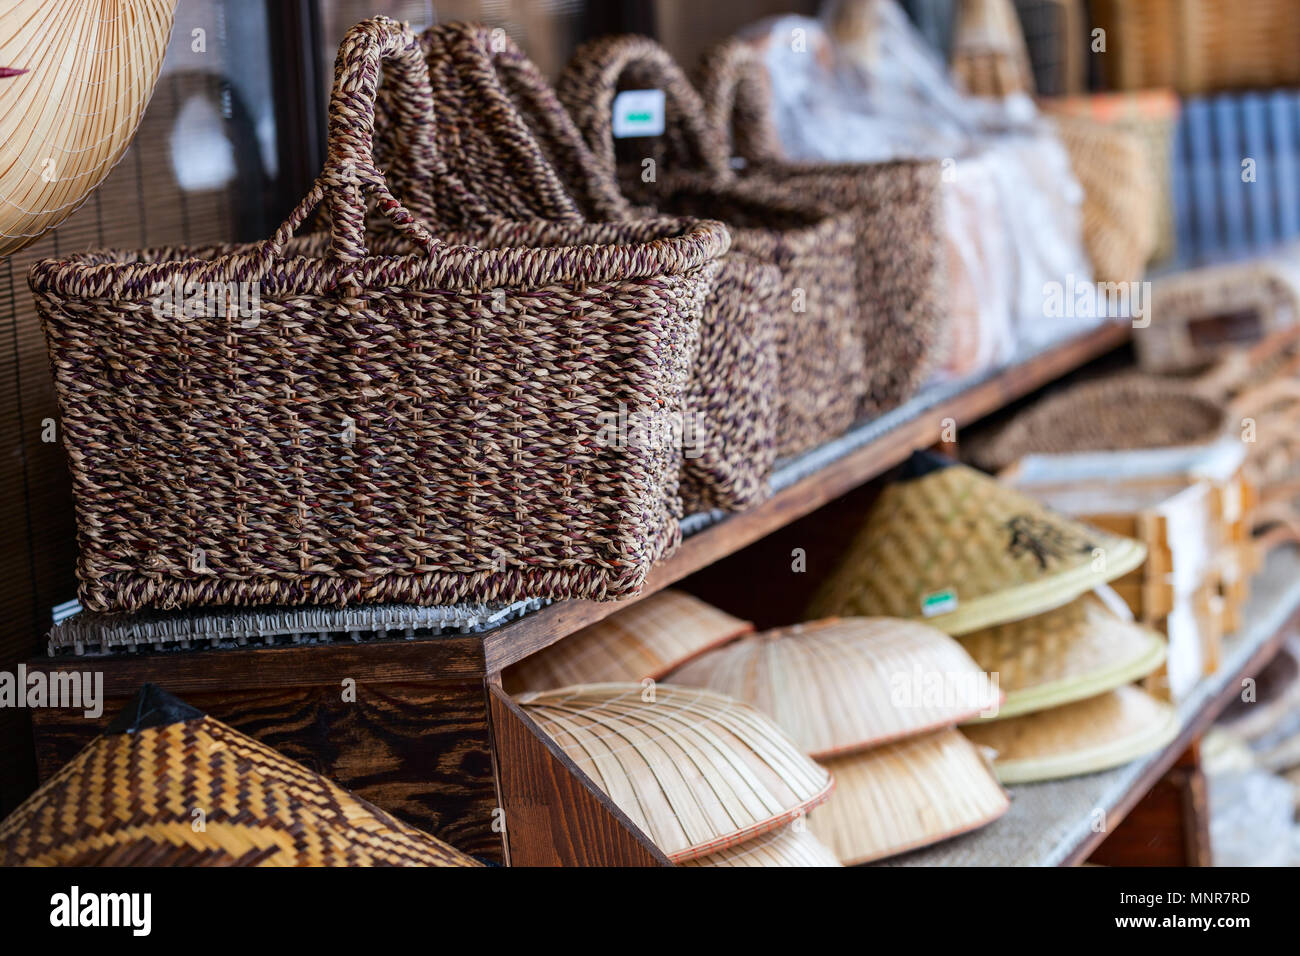 Japanese souvenirs straw hats and baskets - Stock Image